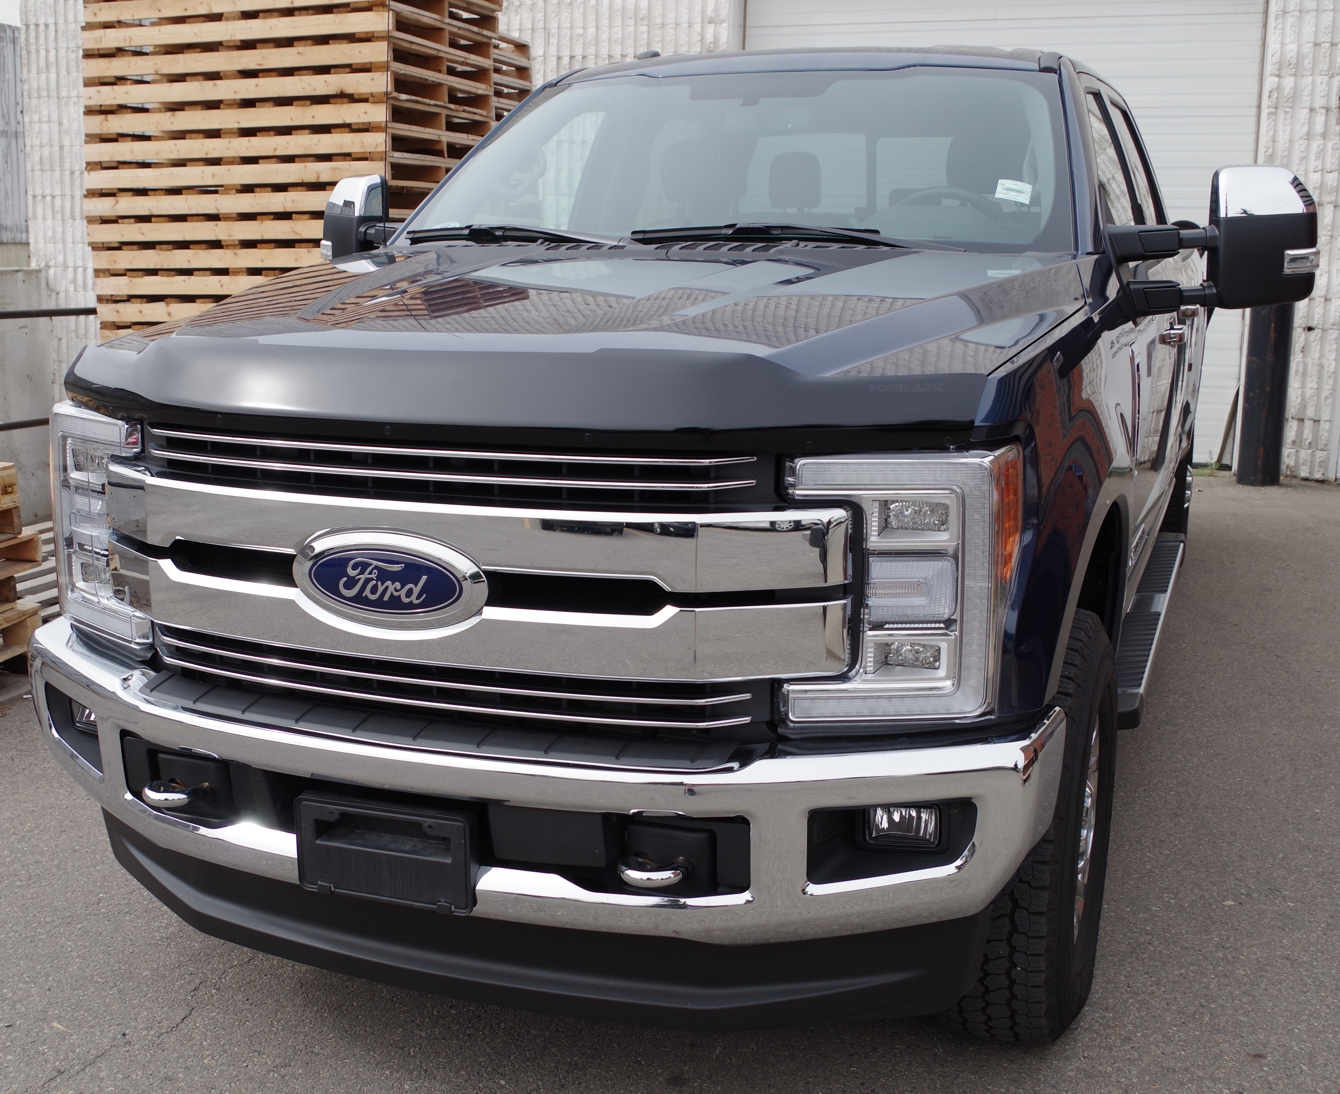 Ford Super Duty F250-F350 (2017-Up) FormFit Hood Protector